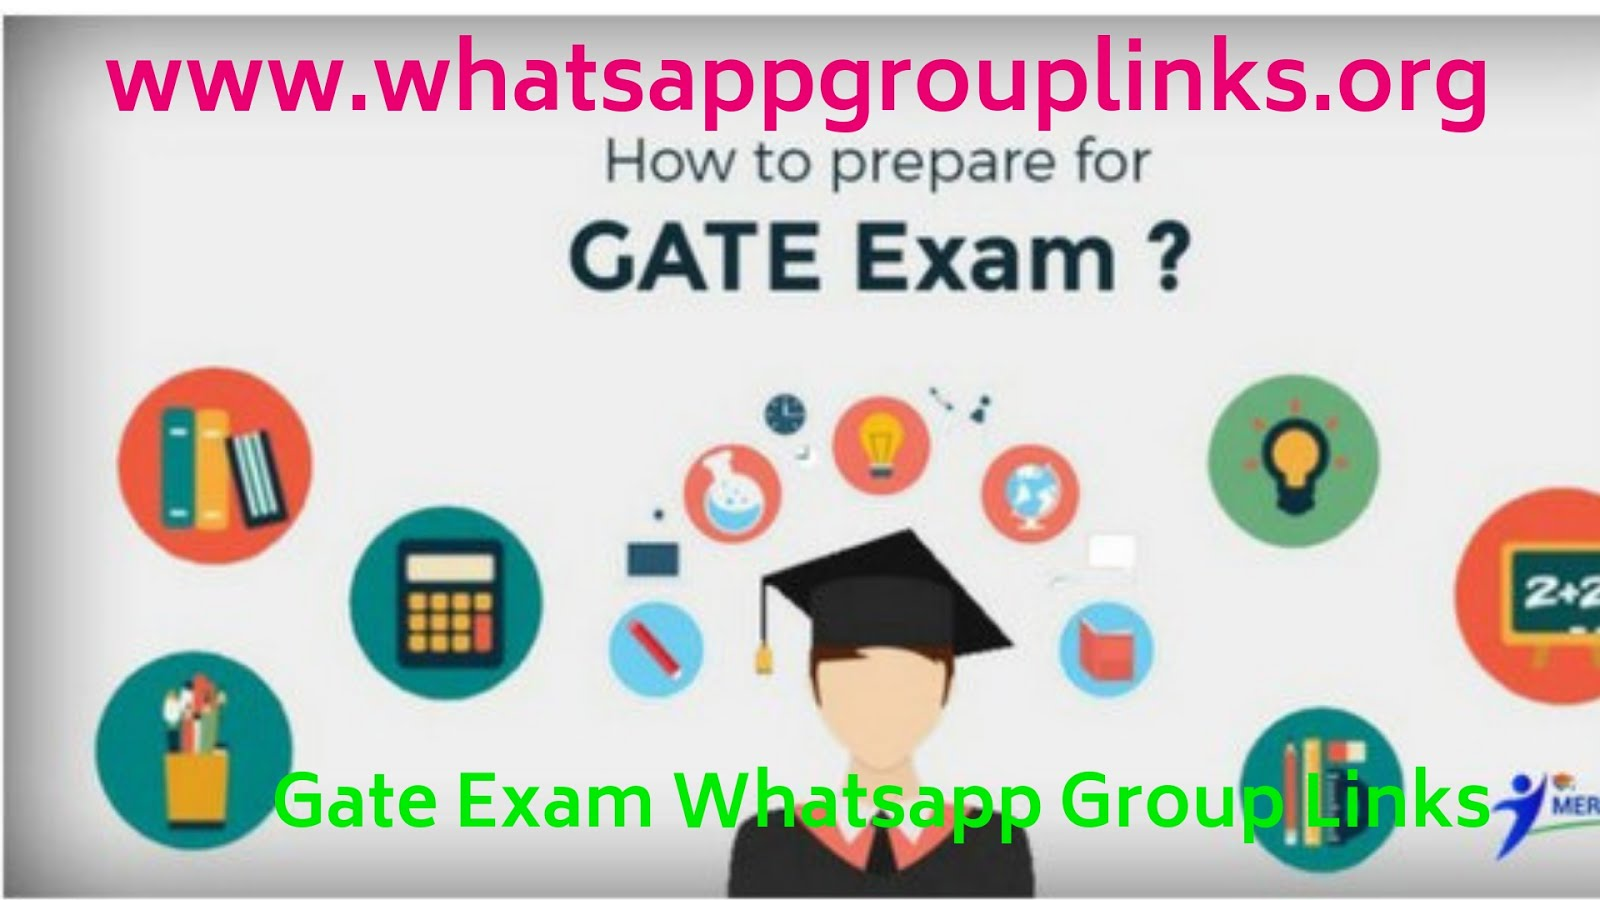 Join Gate Exam Whatsapp Group Links List - Whatsapp Group Links